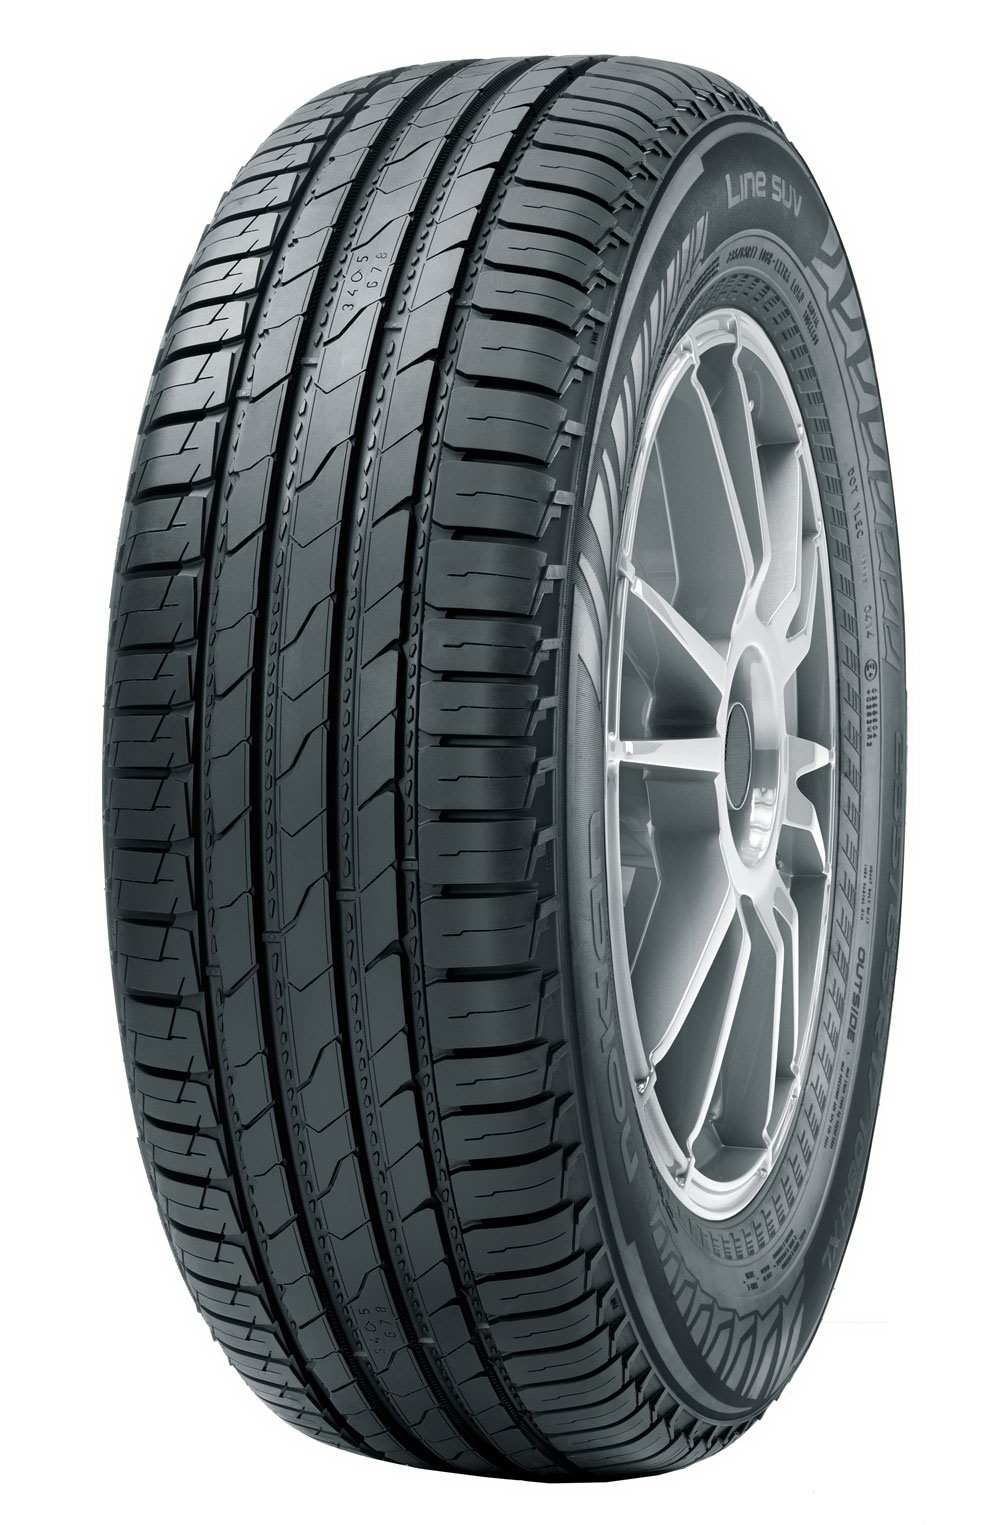 Anvelope all seasons NOKIAN WEATHERPROOF C 225/65 R16C 112R